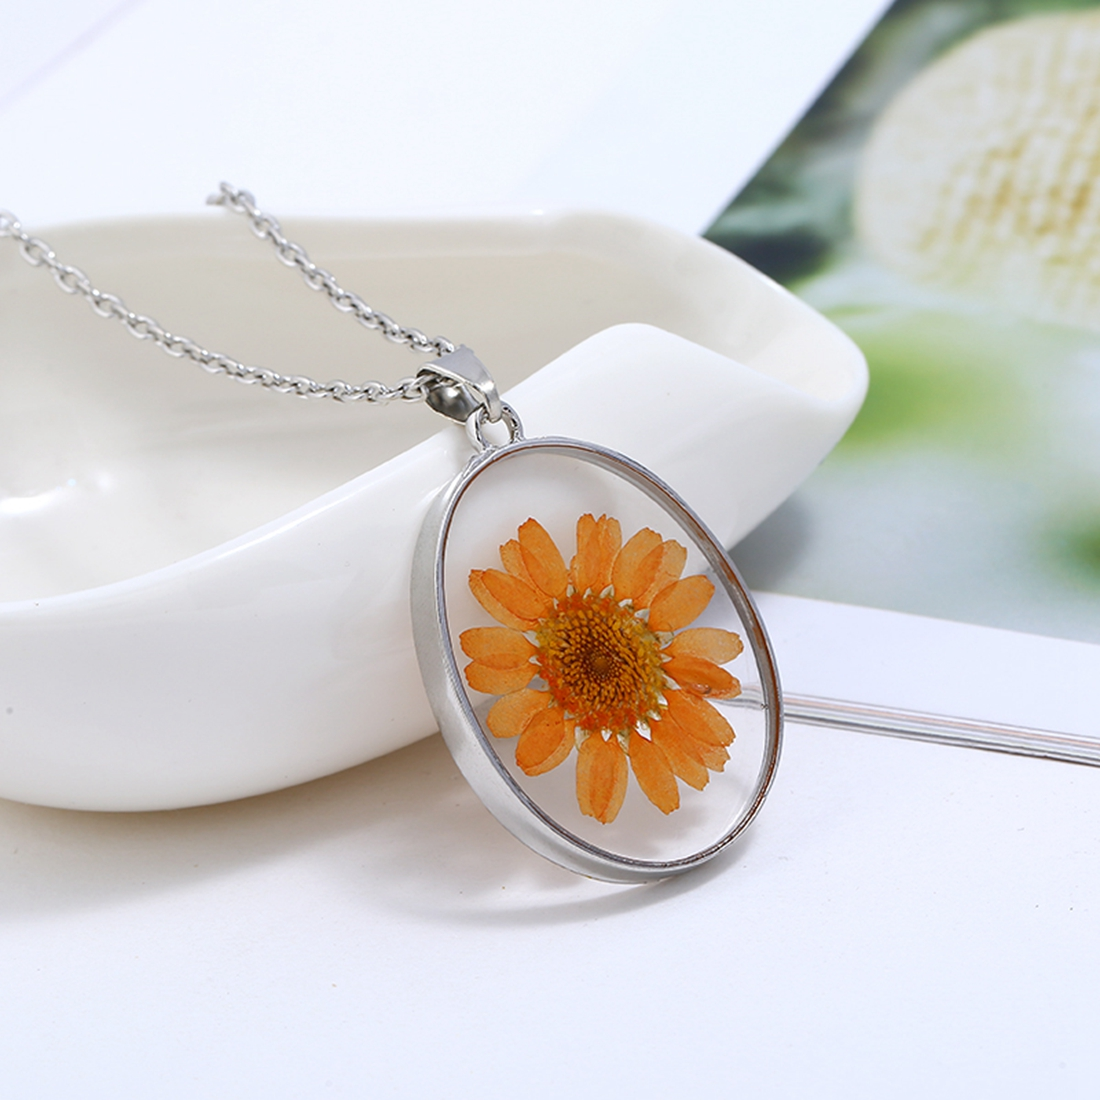 2018 Vintage Romantic Style Dried Flowers Resin Necklace Colorful Sunflower Decoration Pendant Necklace Girls Gift Wholesale